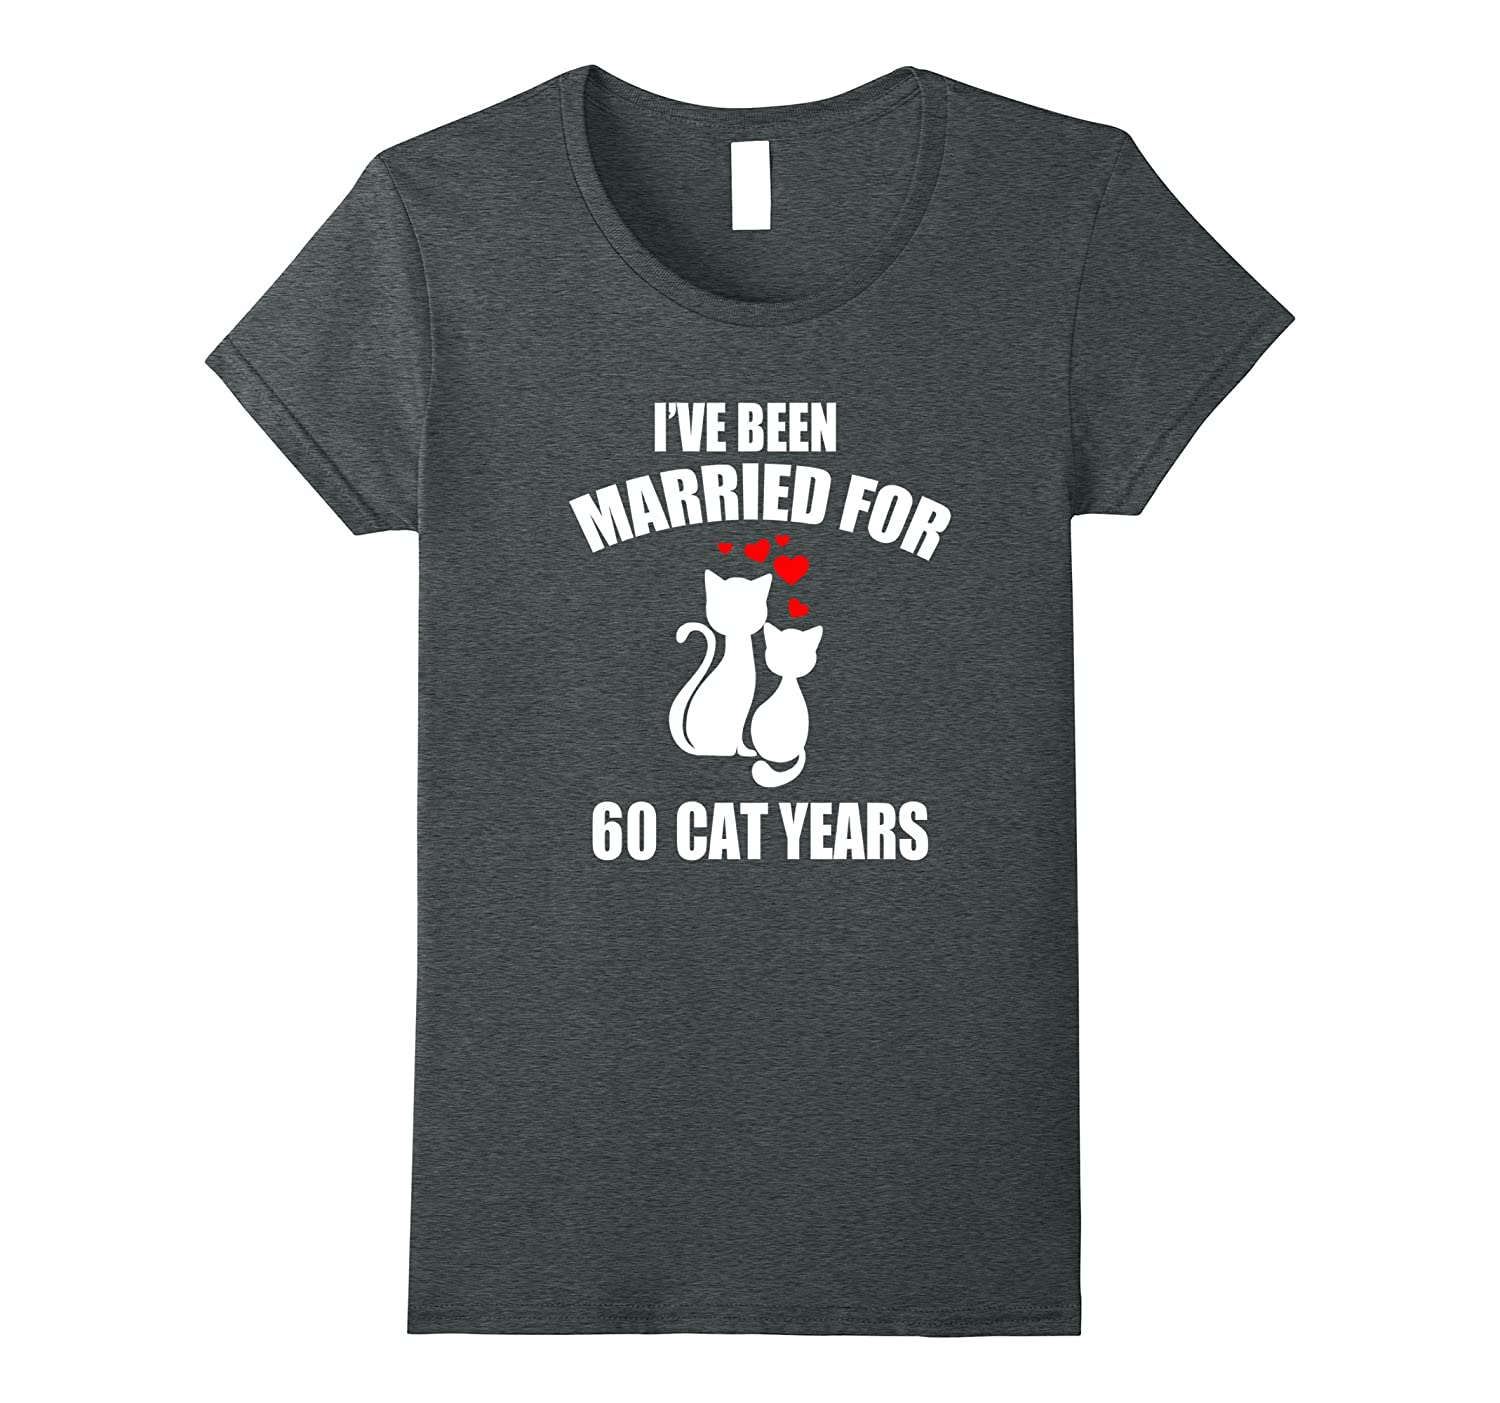 11th Wedding Anniversary T-Shirt 60 Cat Years Gift